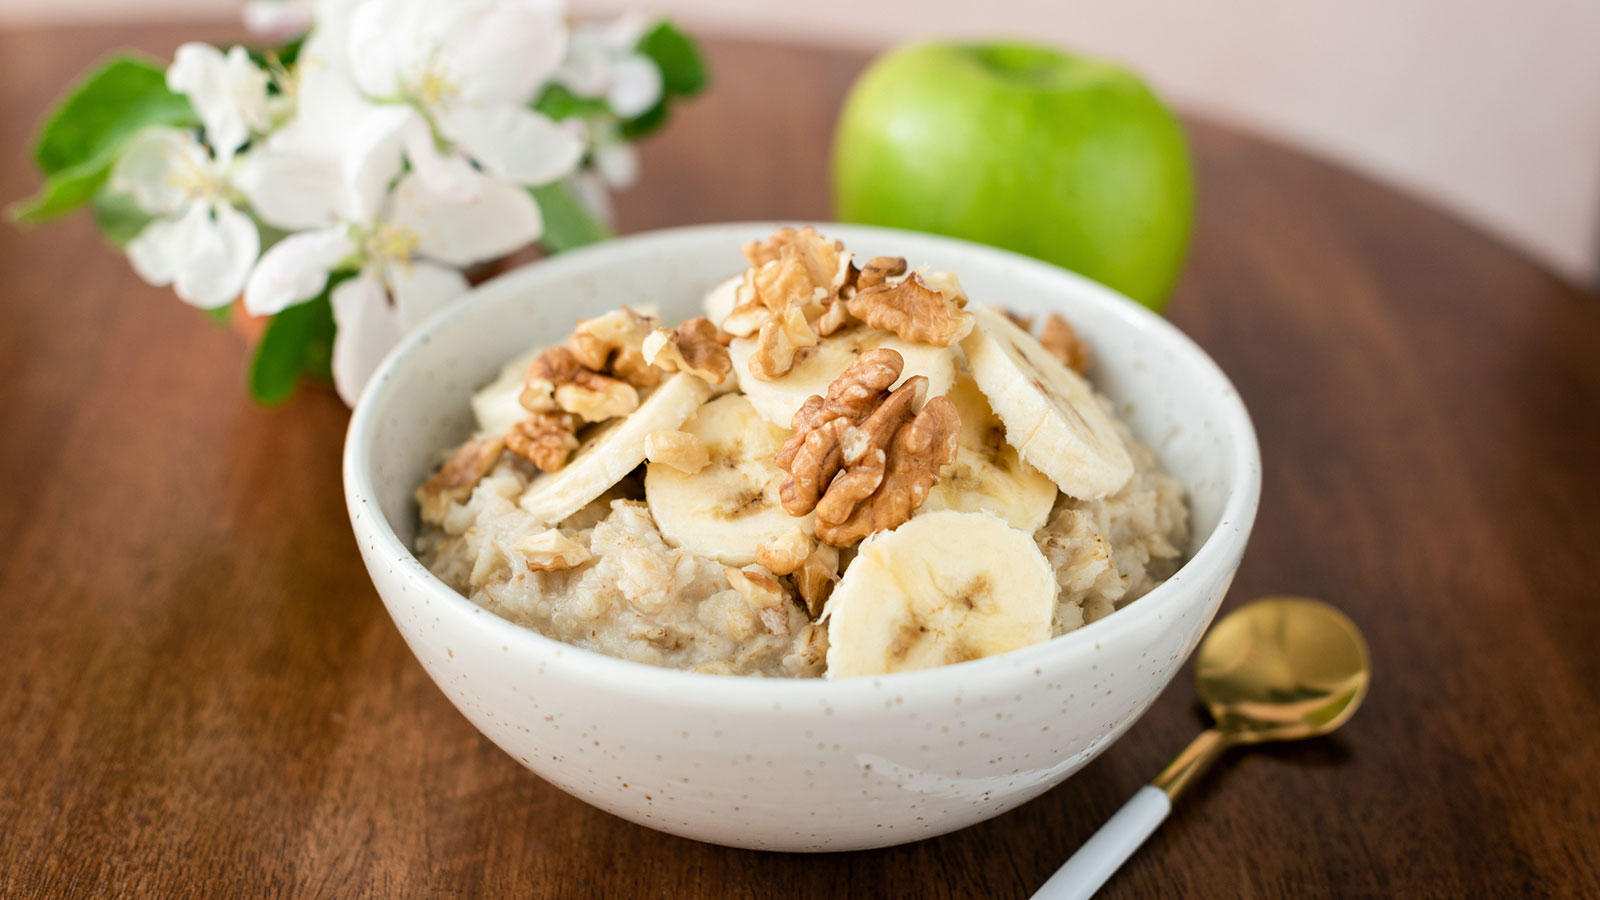 The Particulars of a Perfect Porridge